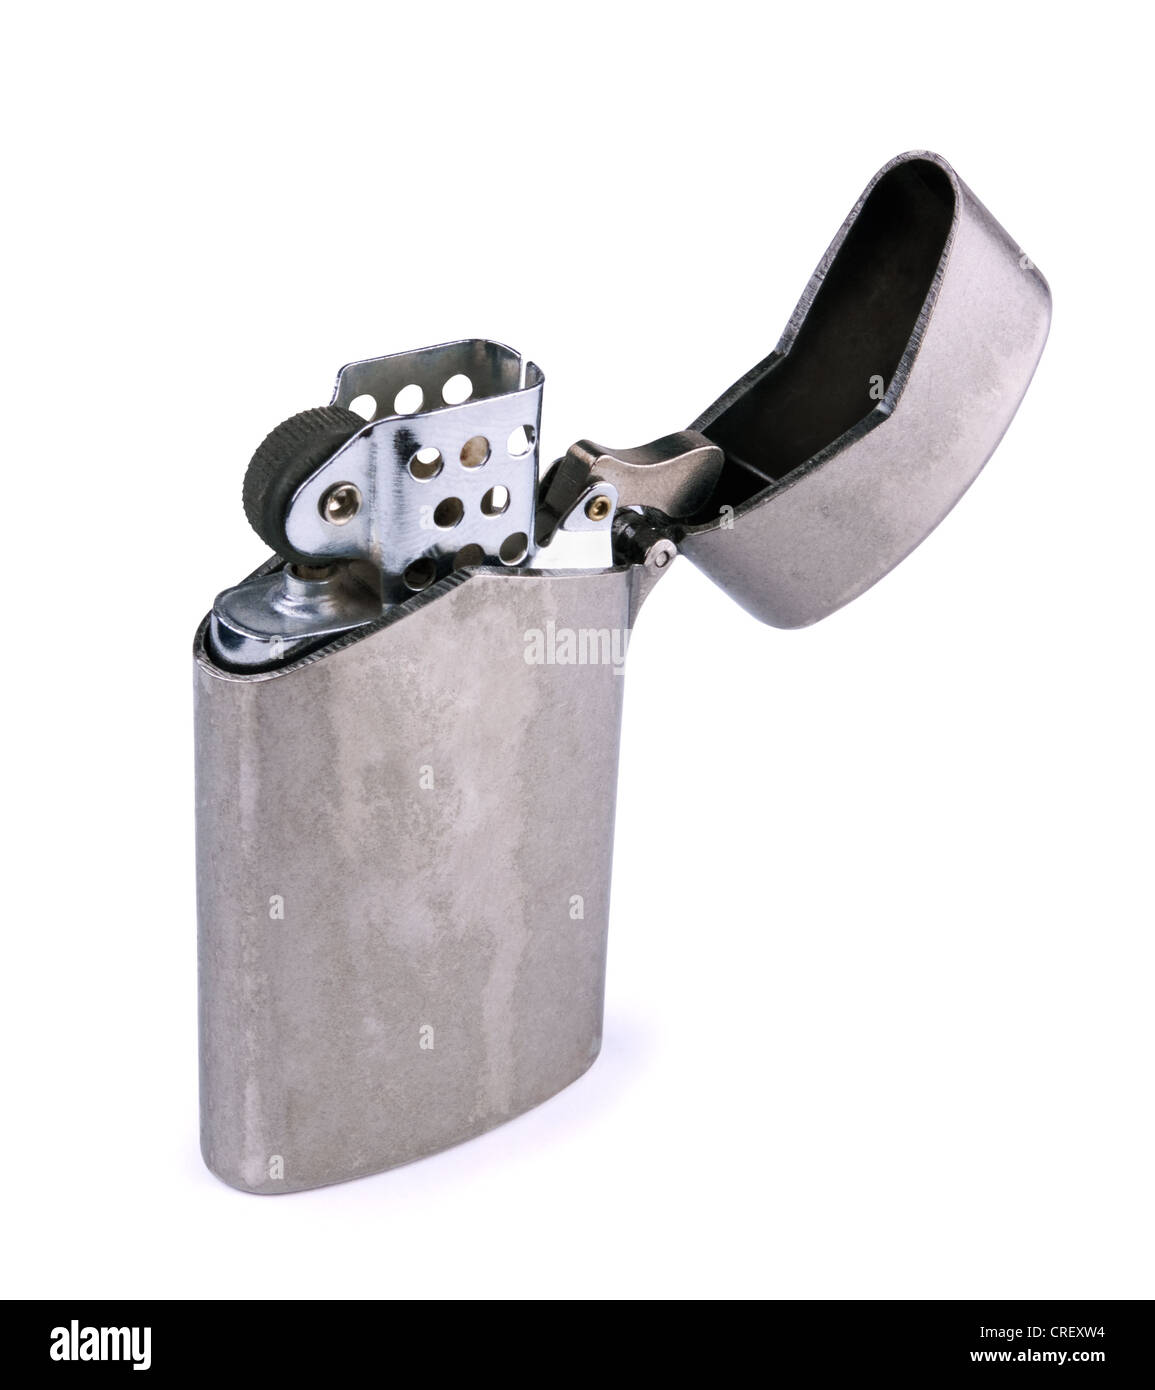 Old cigarette lighter isolated on white - Stock Image